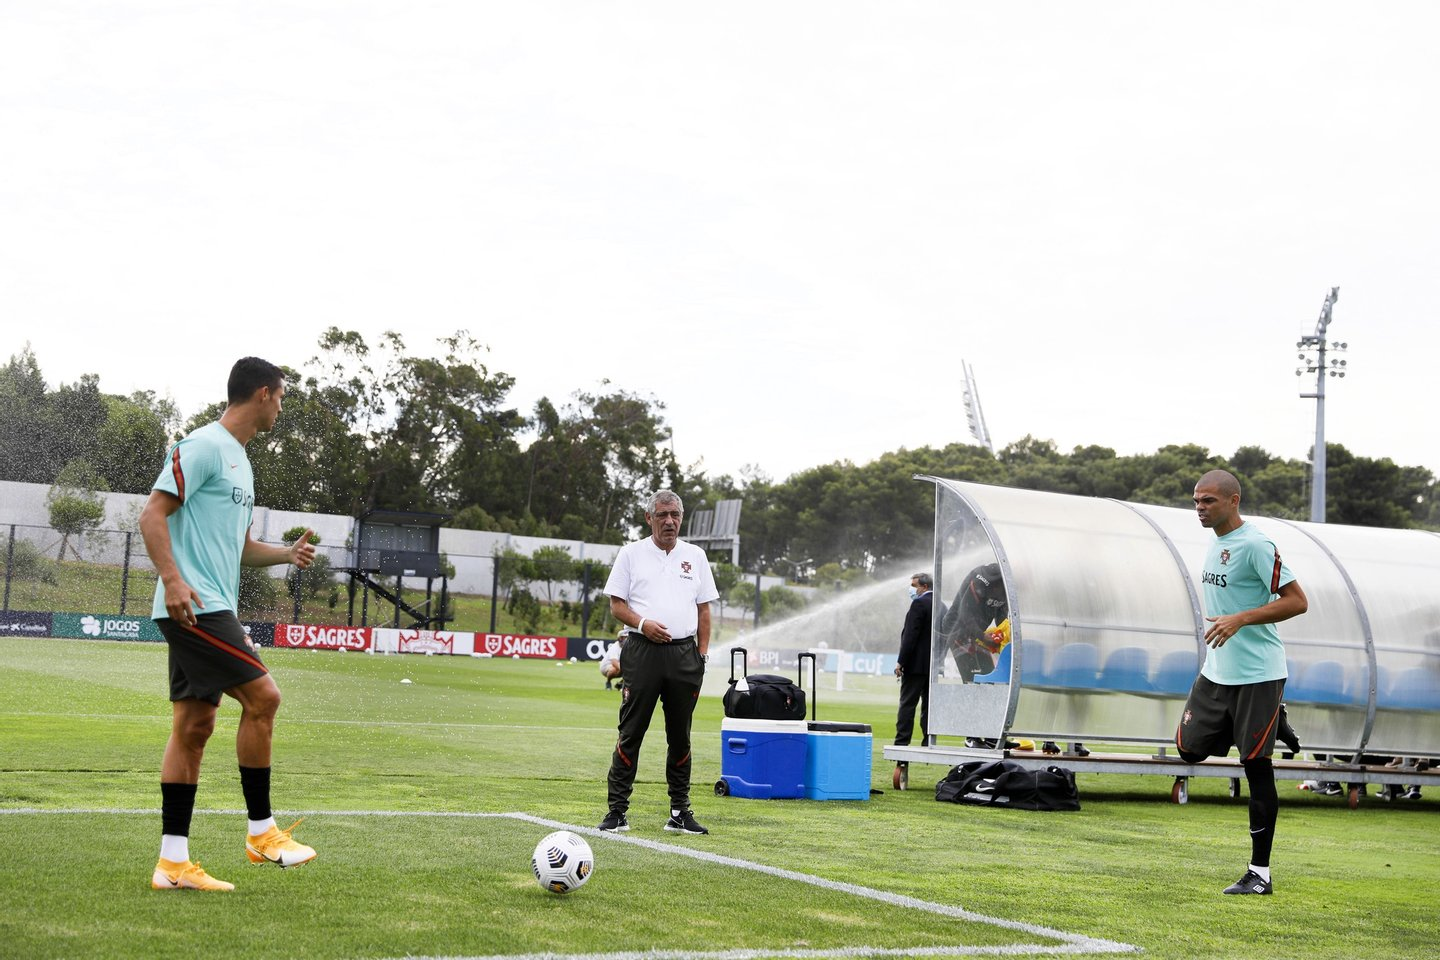 epa08639812 A handout photo made available by the Portuguese Football Federation (FPF) shows Portuguese national soccer head coach Fernando Santos (C) with players Cristiano Ronaldo (L) and Pepe (R) during the team's training session at Cidade do Futebol in Oeiras, Portugal, 01 September 2020. Portugal will face Croatia on 05 September 2020 in a UEFA Nations League match. EPA/DIOGO PINTO/FPF/HO HANDOUT EDITORIAL USE ONLY/NO SALES